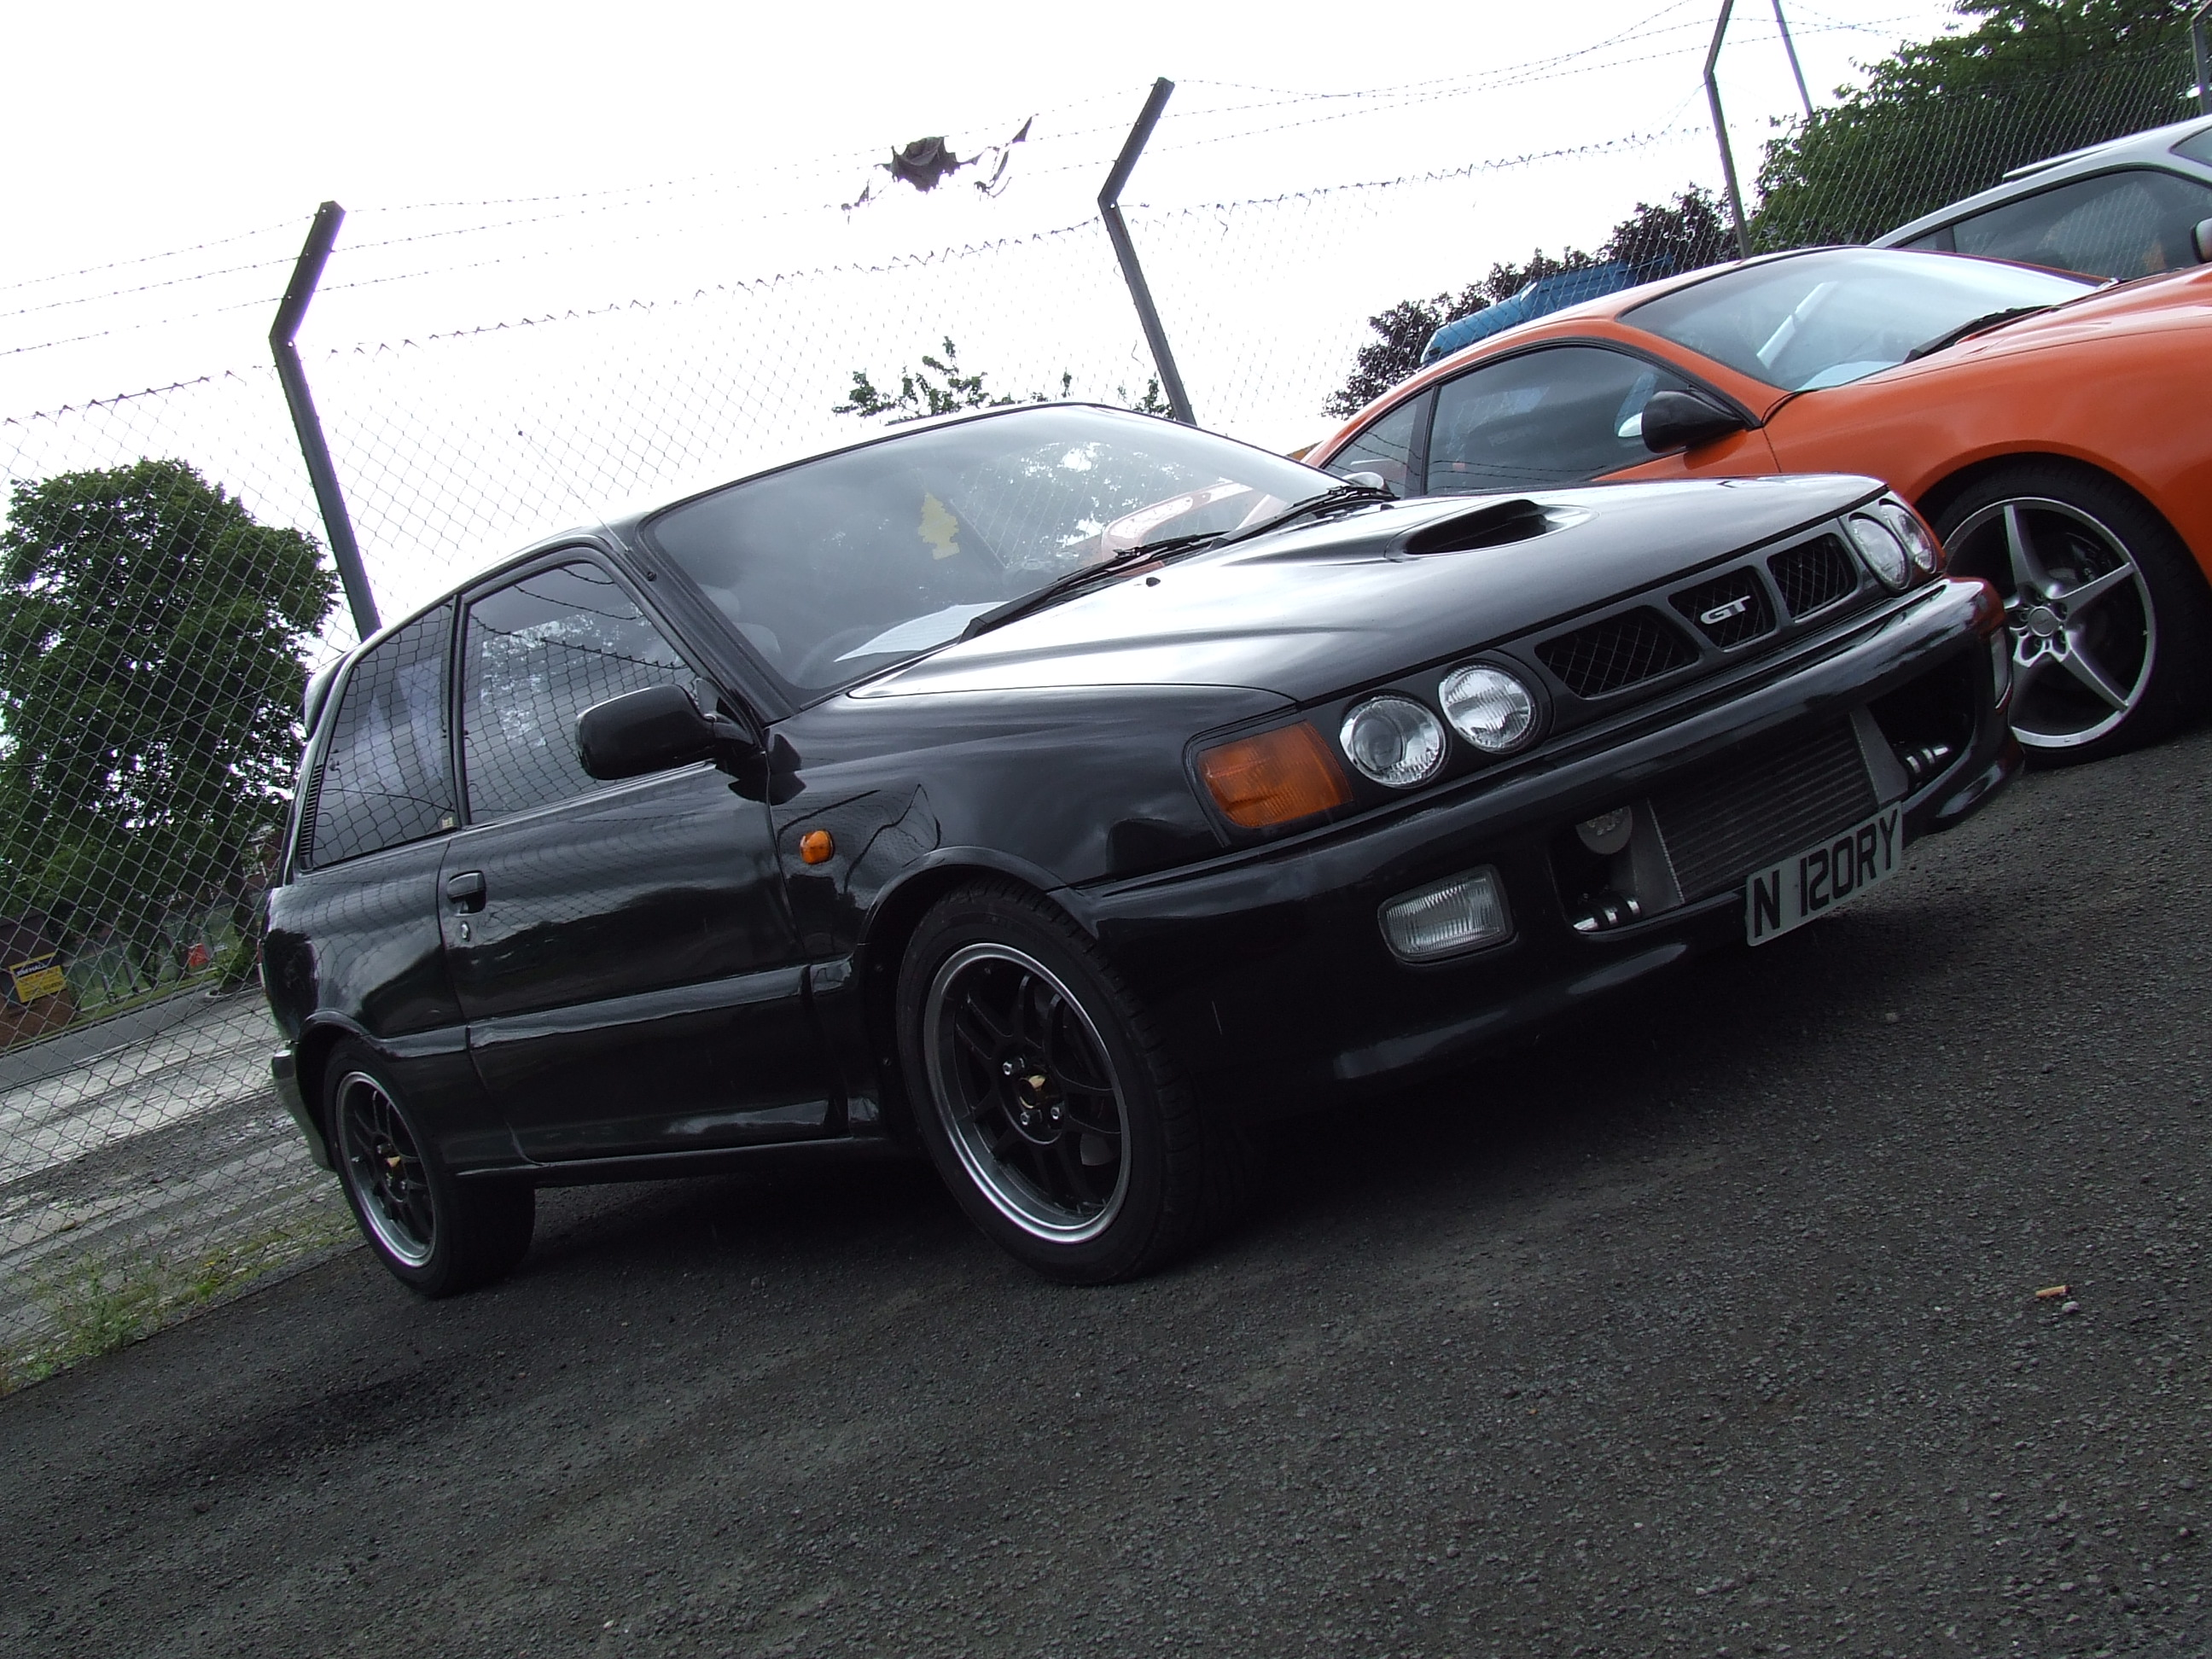 Toyota Starlet GT Turbo | Flickr - Photo Sharing!